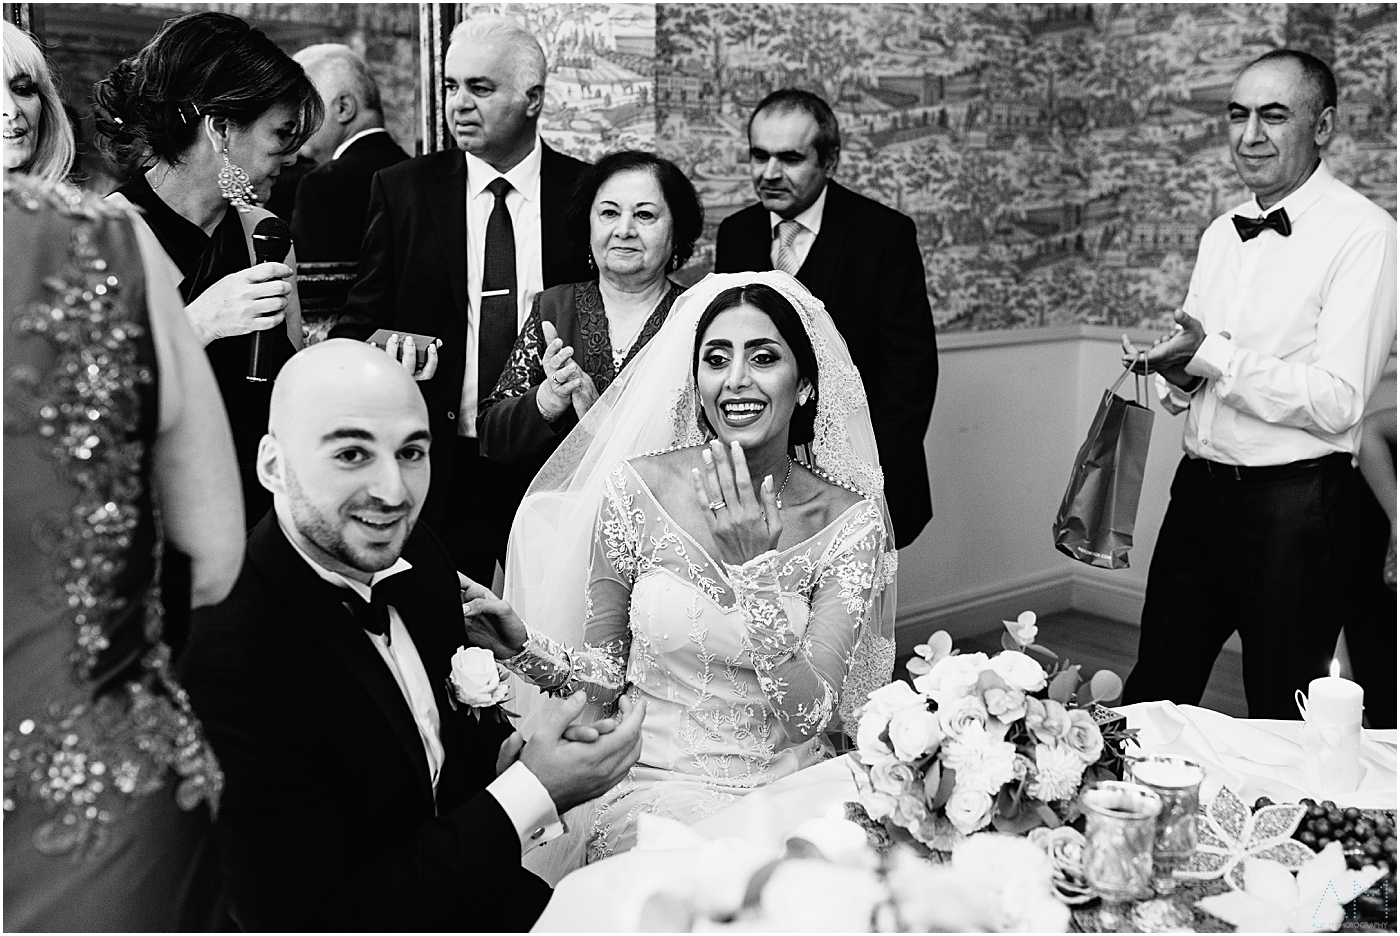 Iranian wedding ceremony